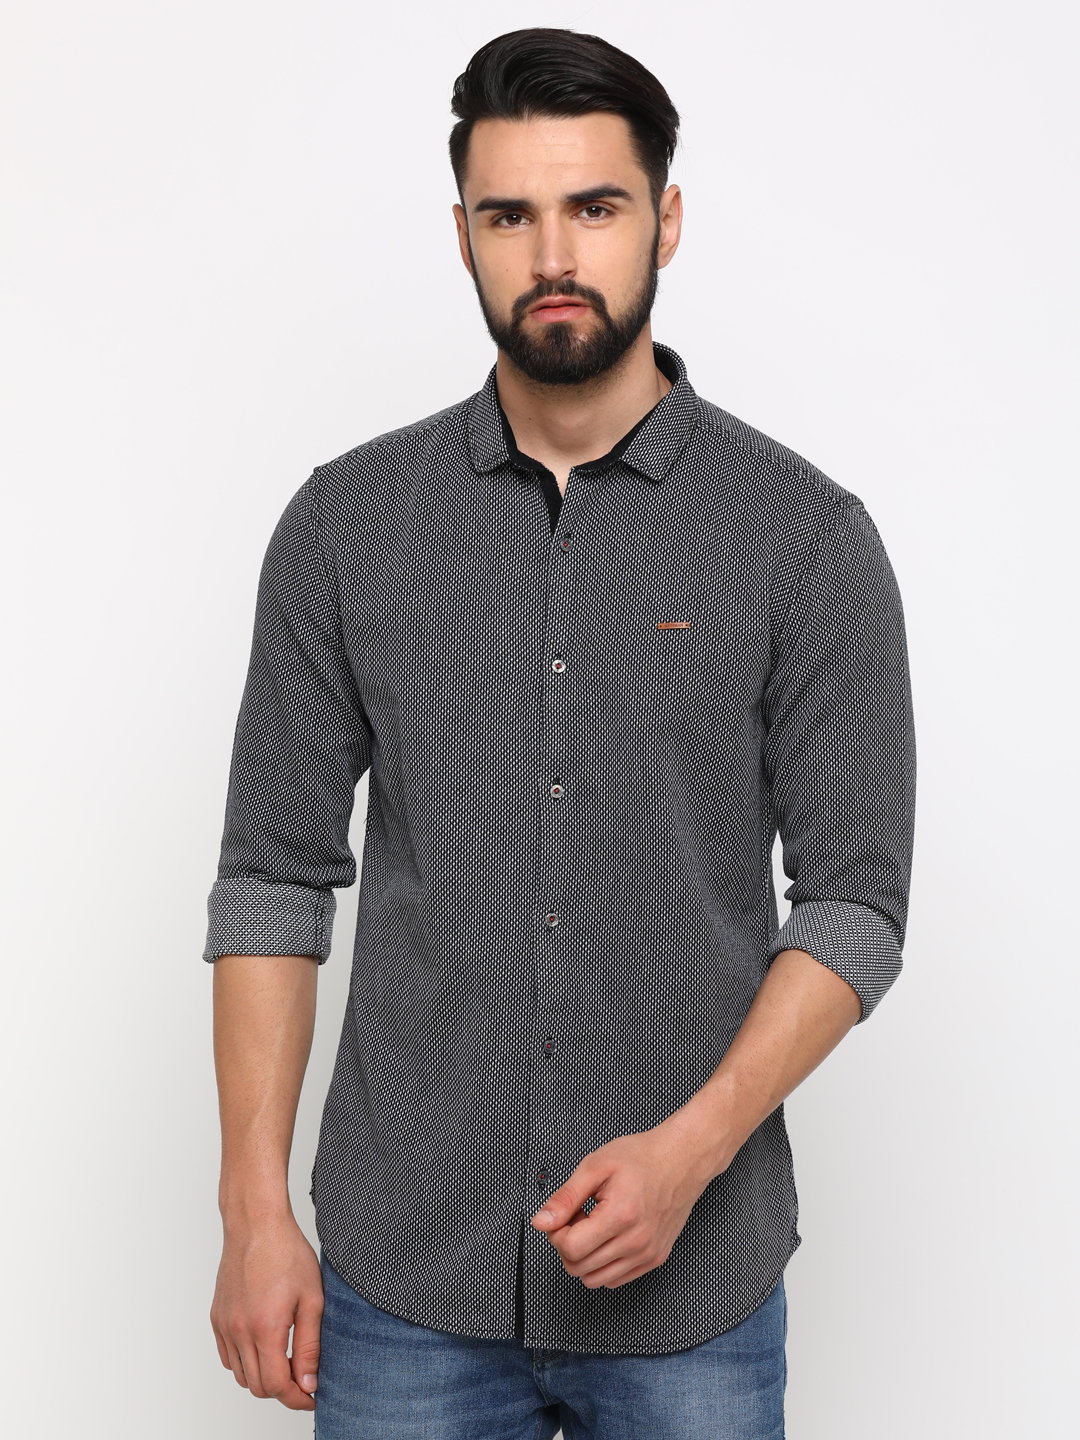 With   WITH Men's Black Cotton Printed SlimFit Shirt